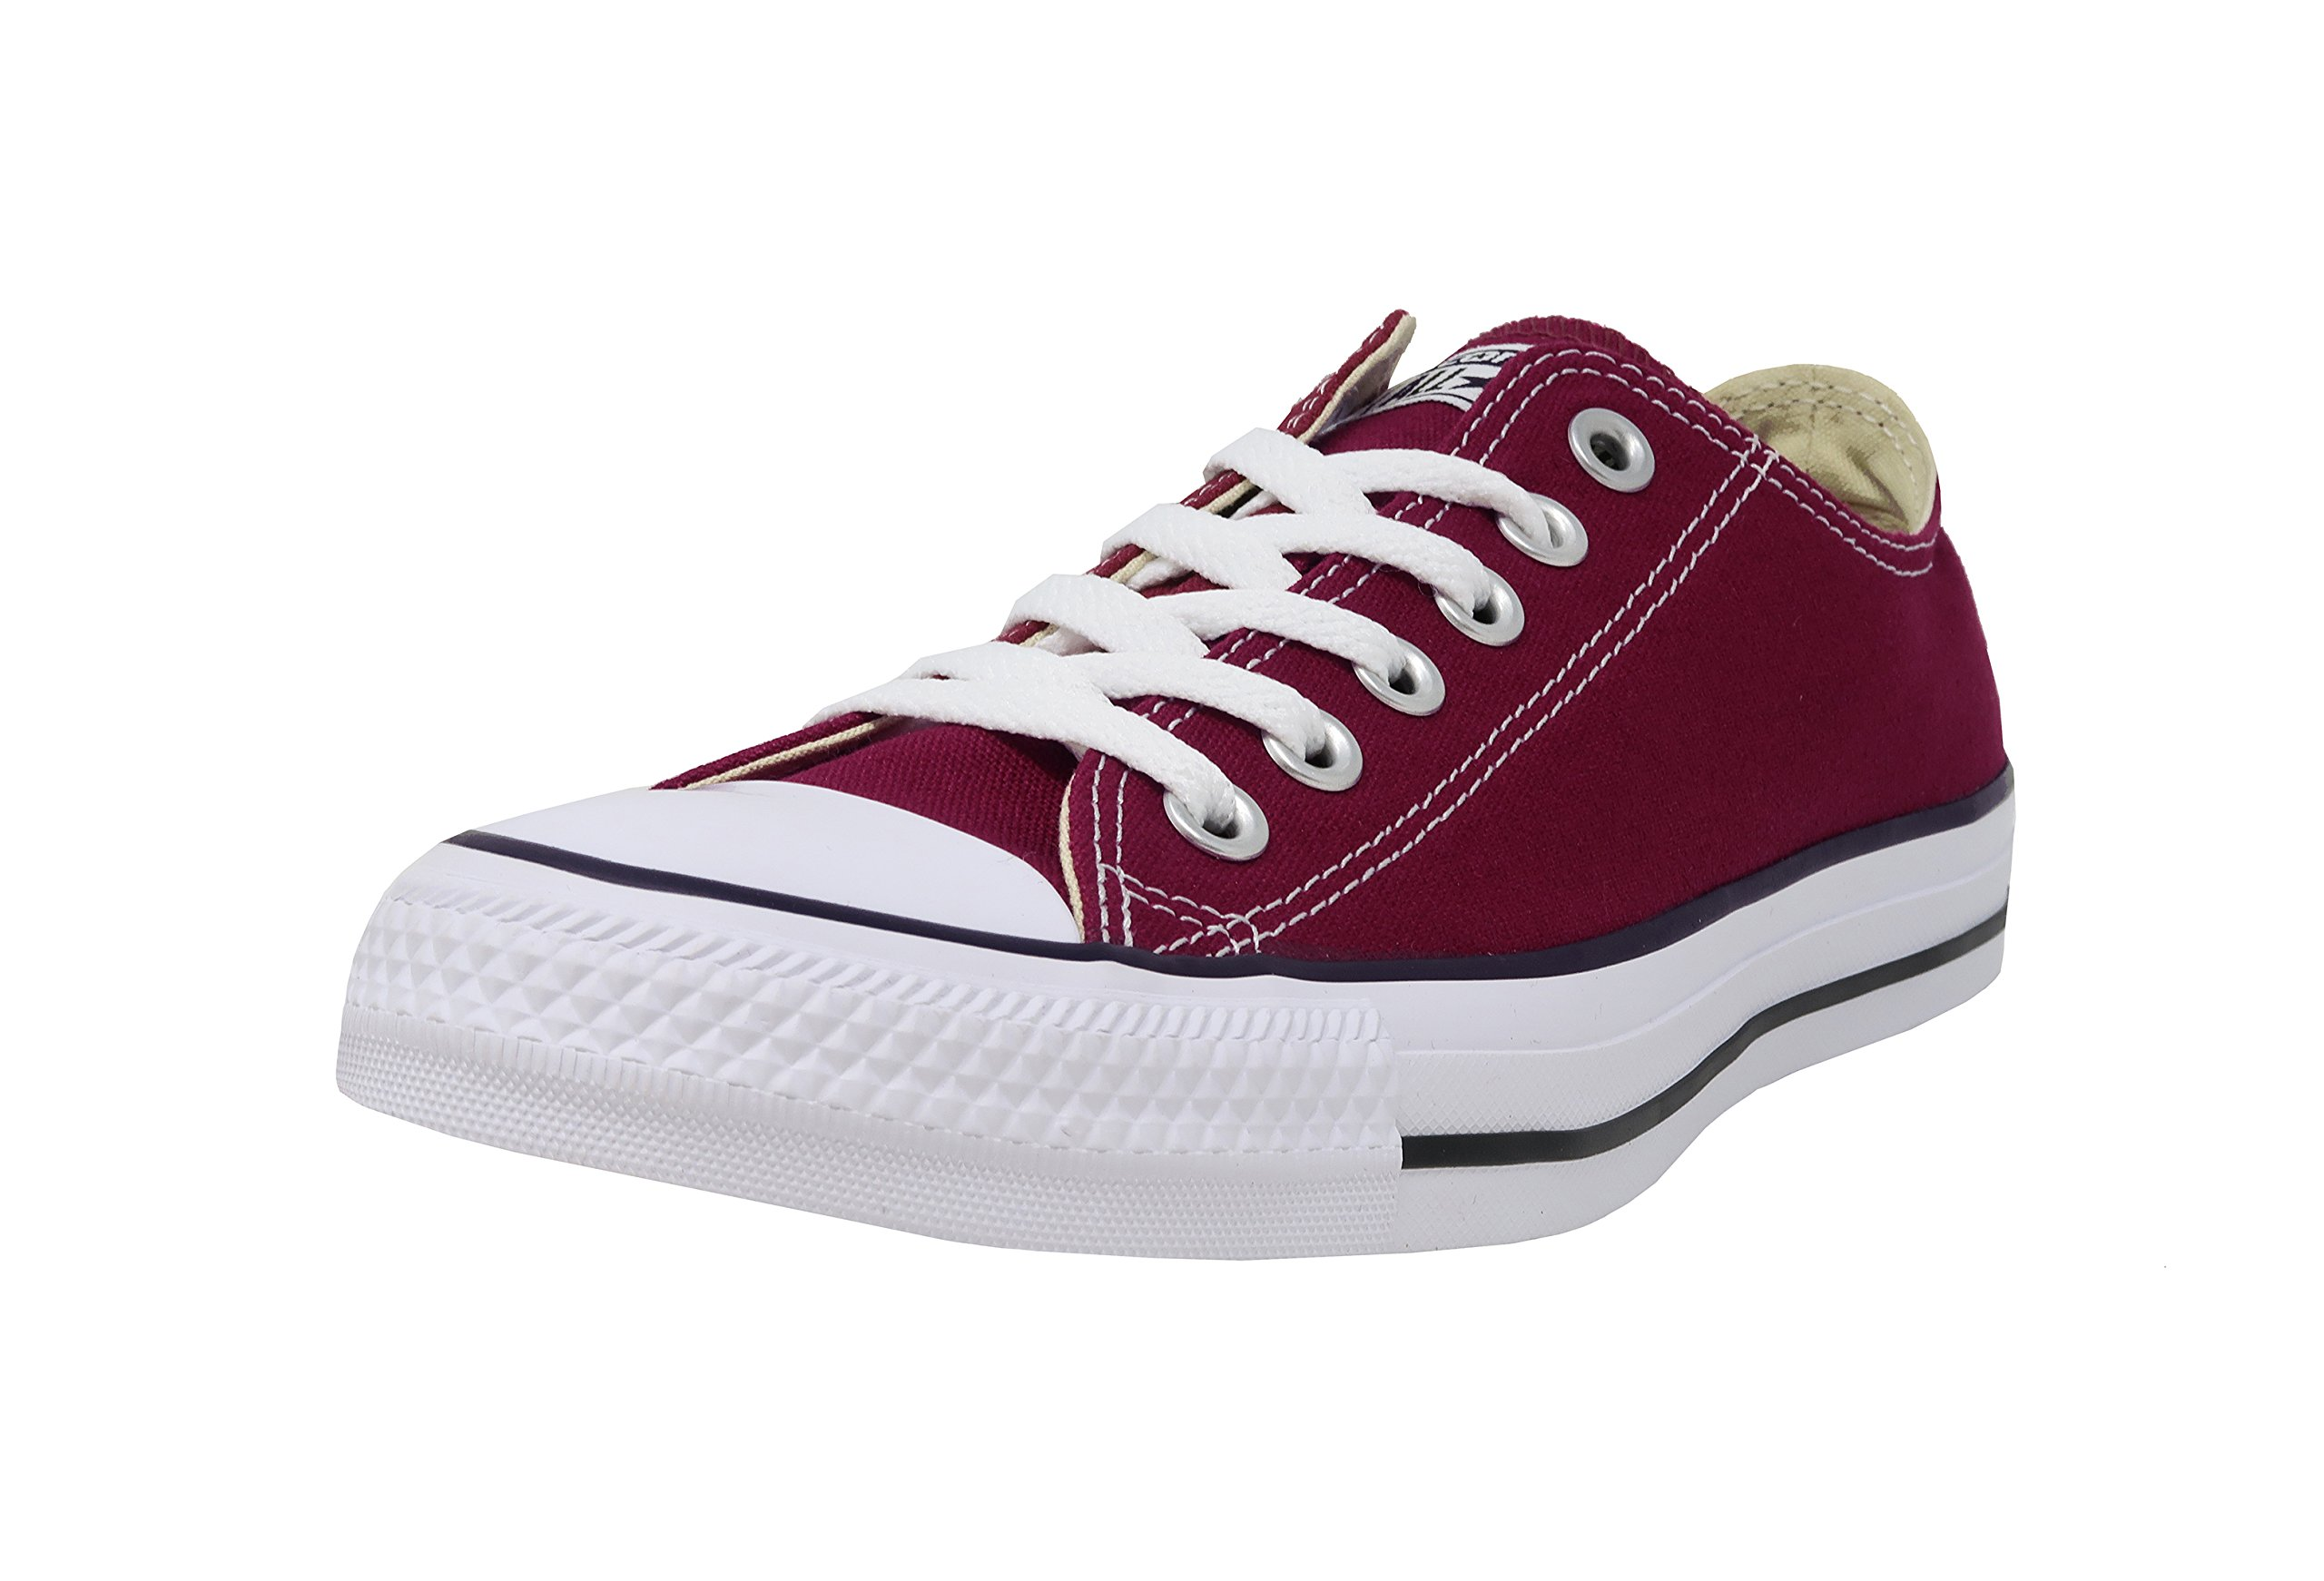 Converse Unisex Chuck Taylor All Star Low Top Sneakers -  Maroon - 5.5 B(M) US